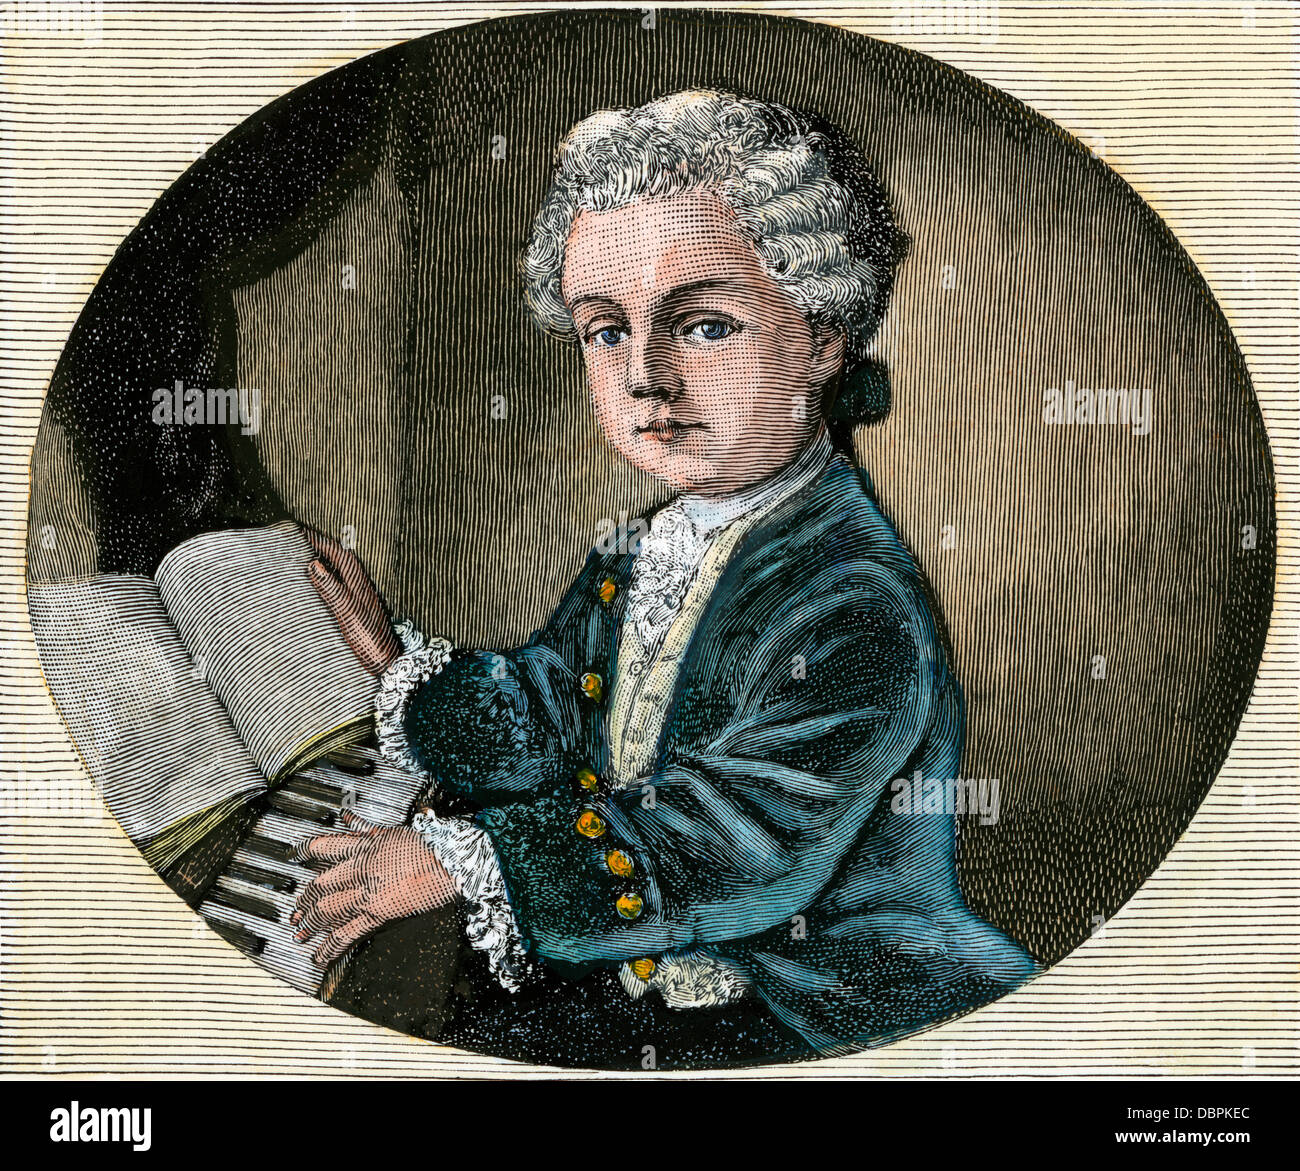 Mozart performing at 4 years of age. Hand-colored woodcut - Stock Image